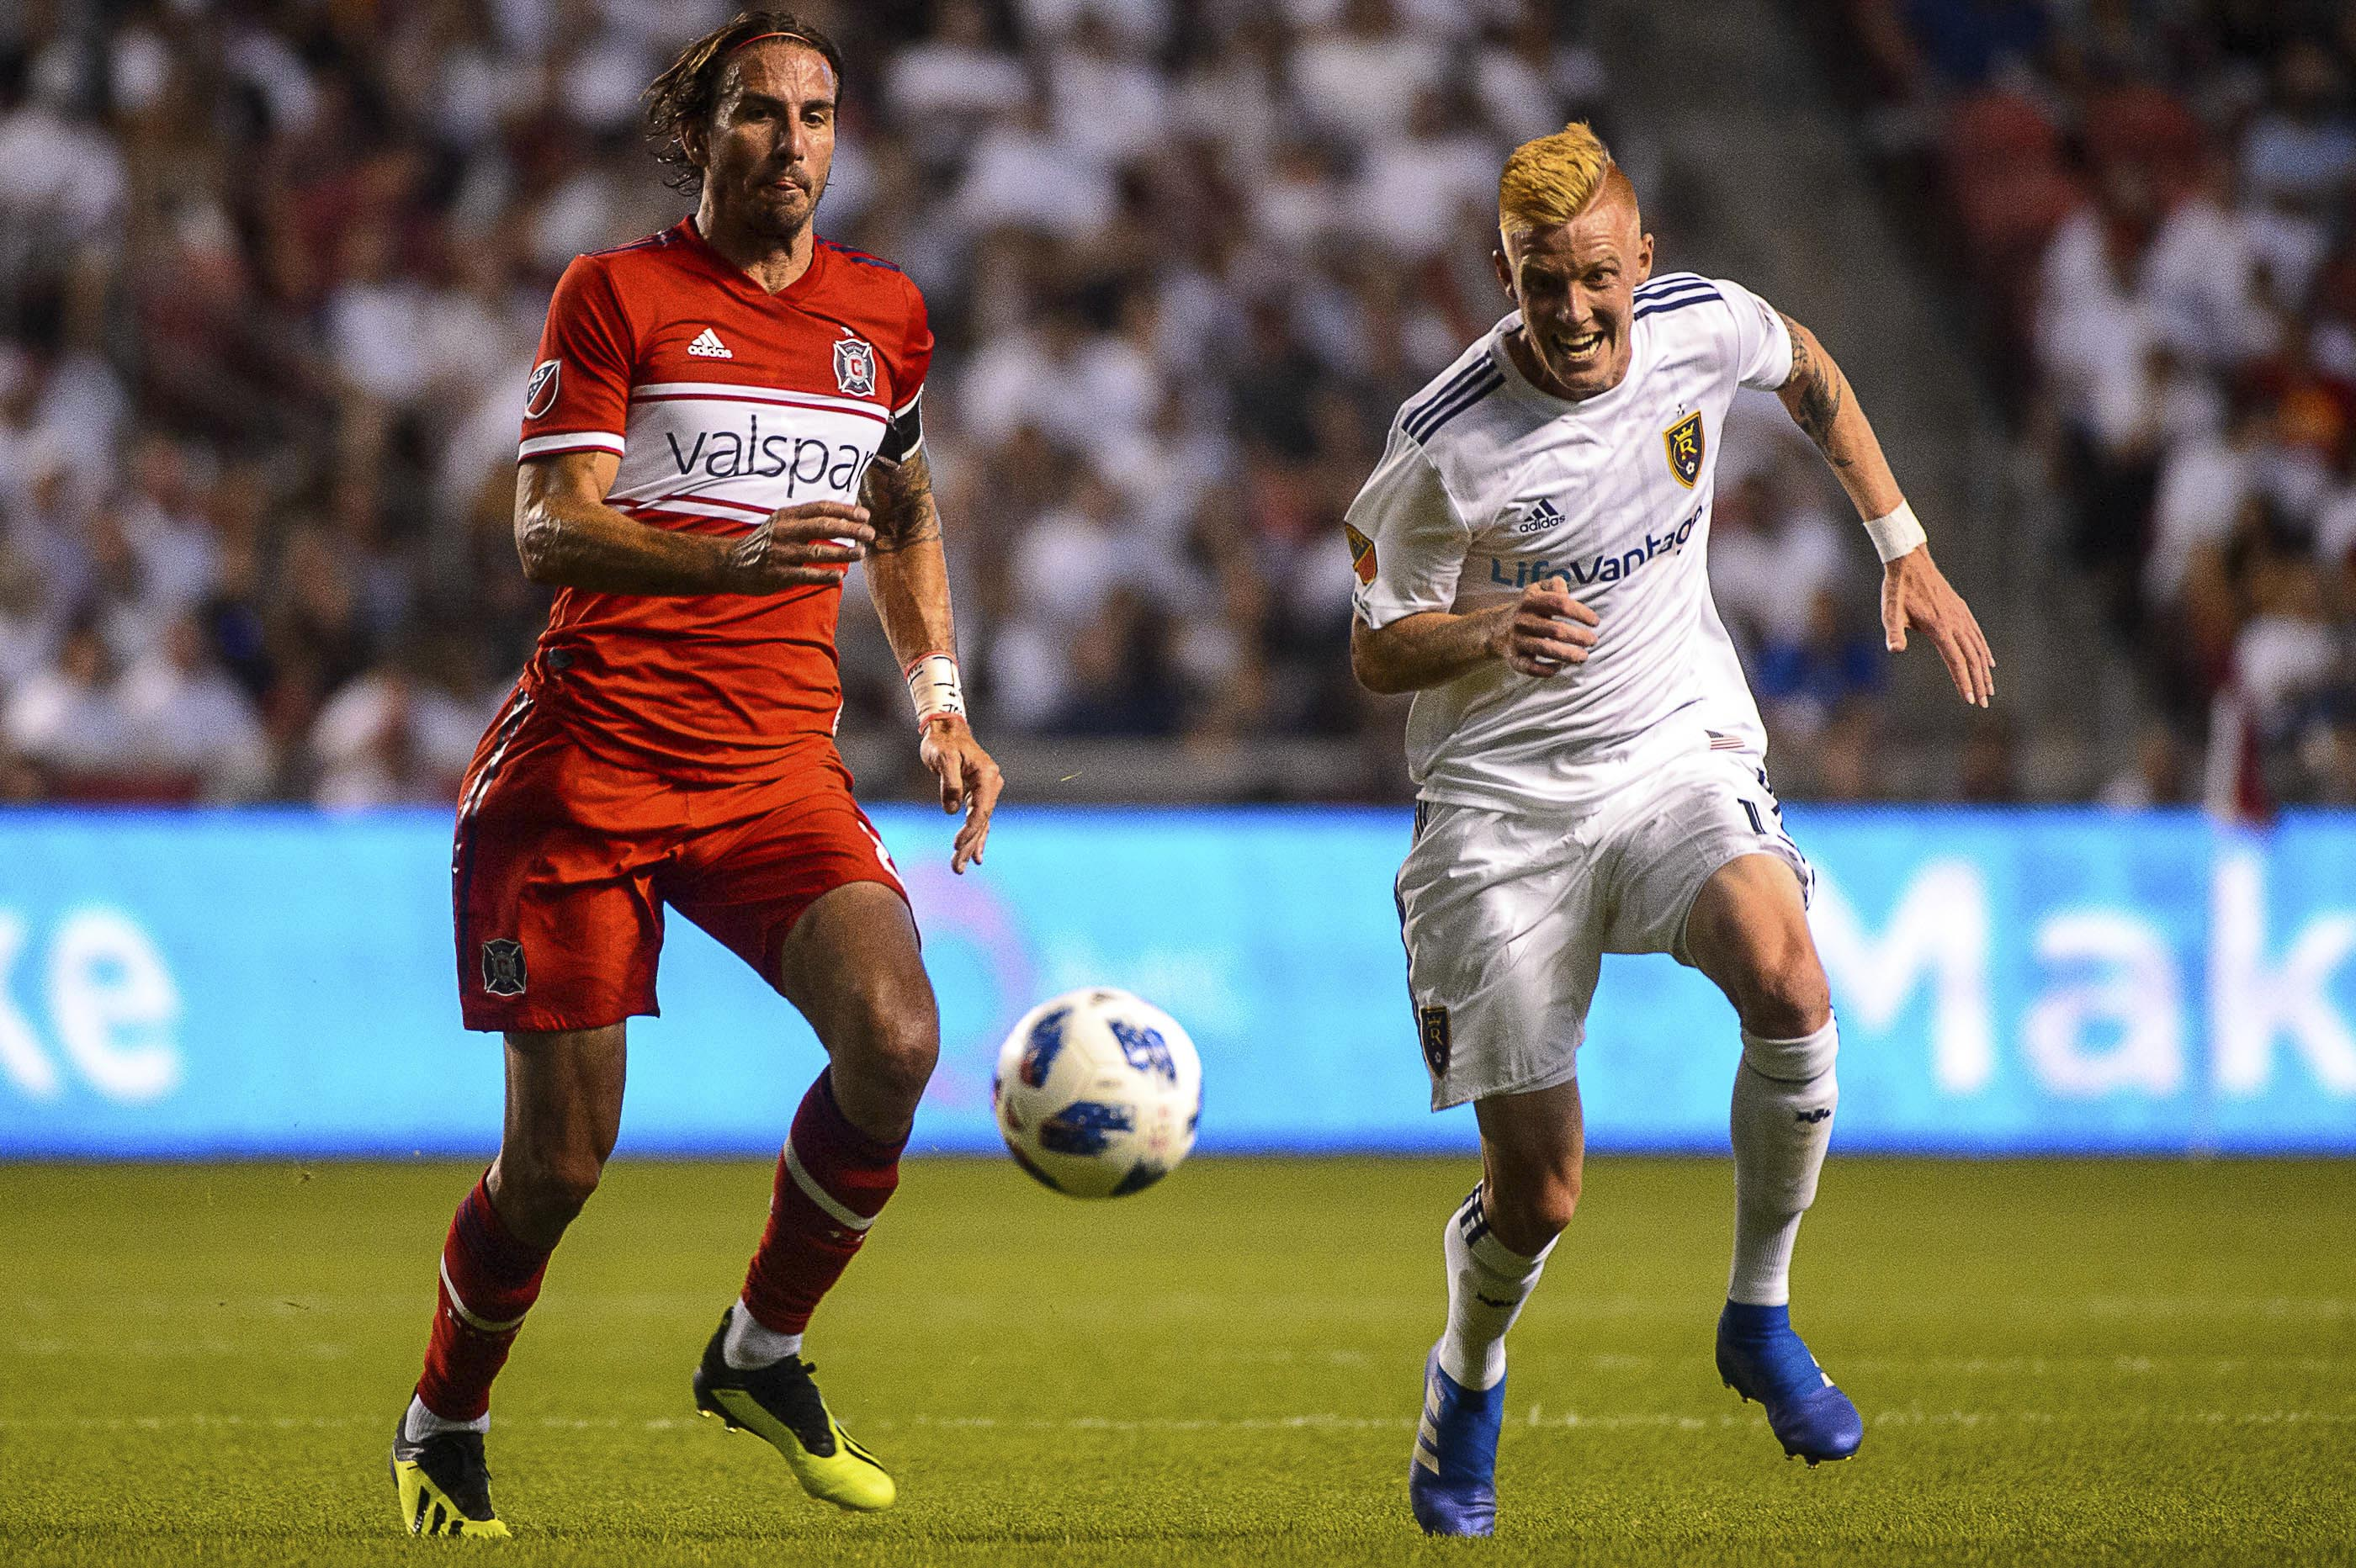 Chicago Fire forward Alan Gordon (left) and Real Salt Lake defender Justen Glad (15) vie for the ball during an MLS soccer game in Sandy, Utah on Saturday.